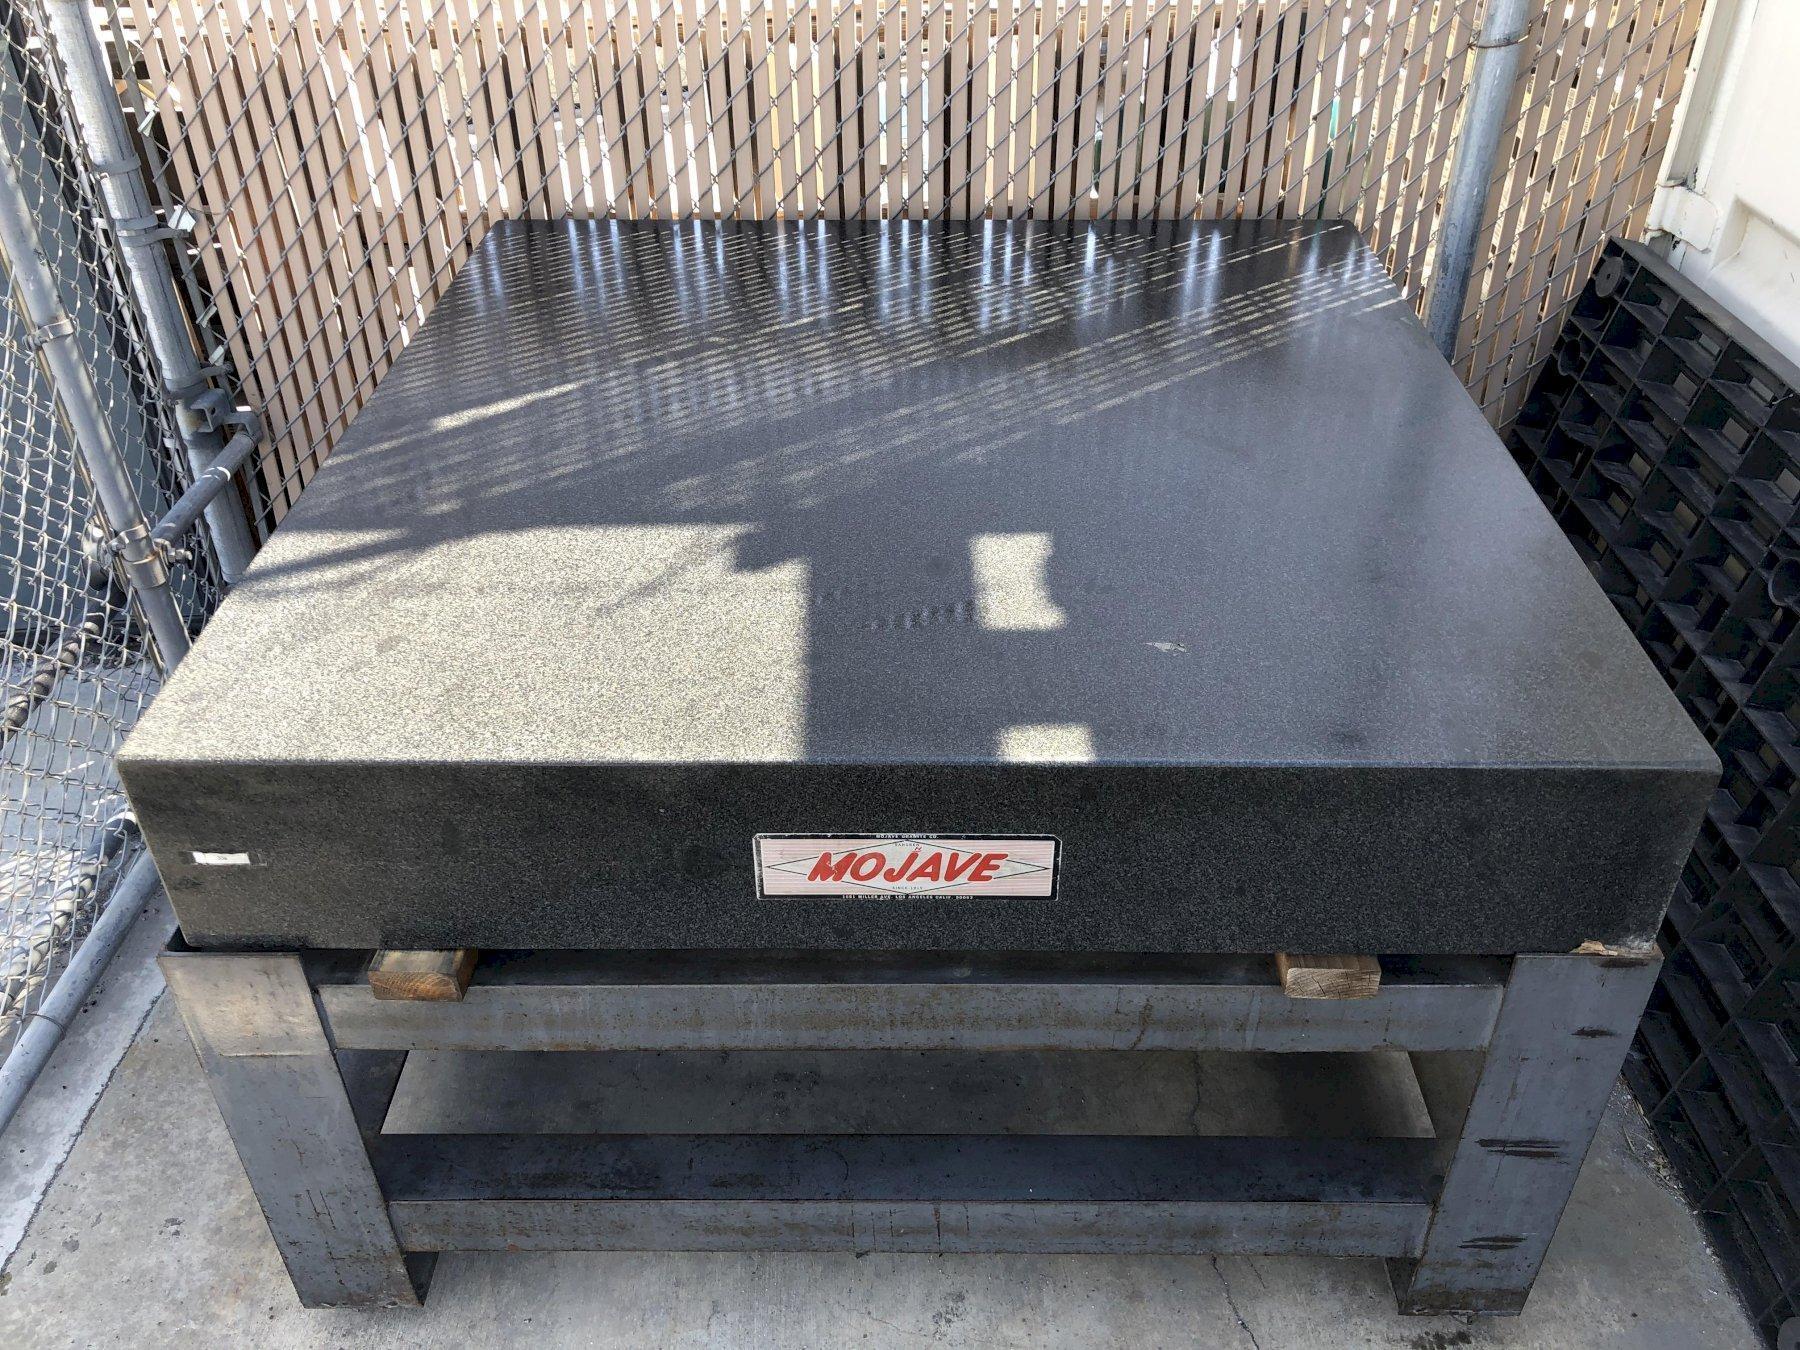 Mojave Square Surface Granite Plate 60